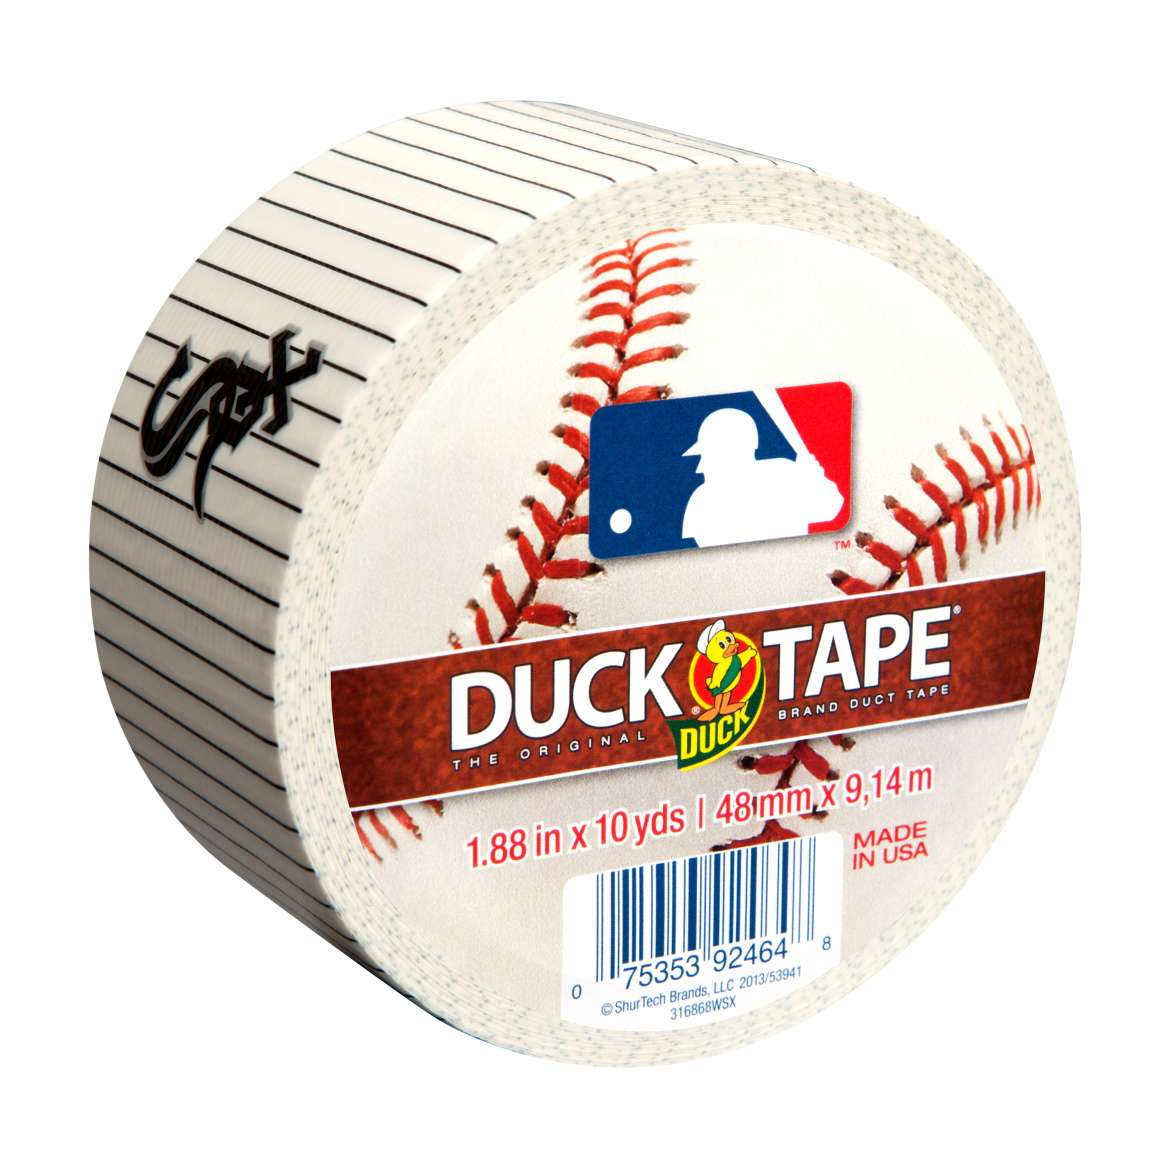 MLB Licensed Duck Tape® Brand Duct Tape - Chicago White Sox, 1.88 in. x 10 yd. Image